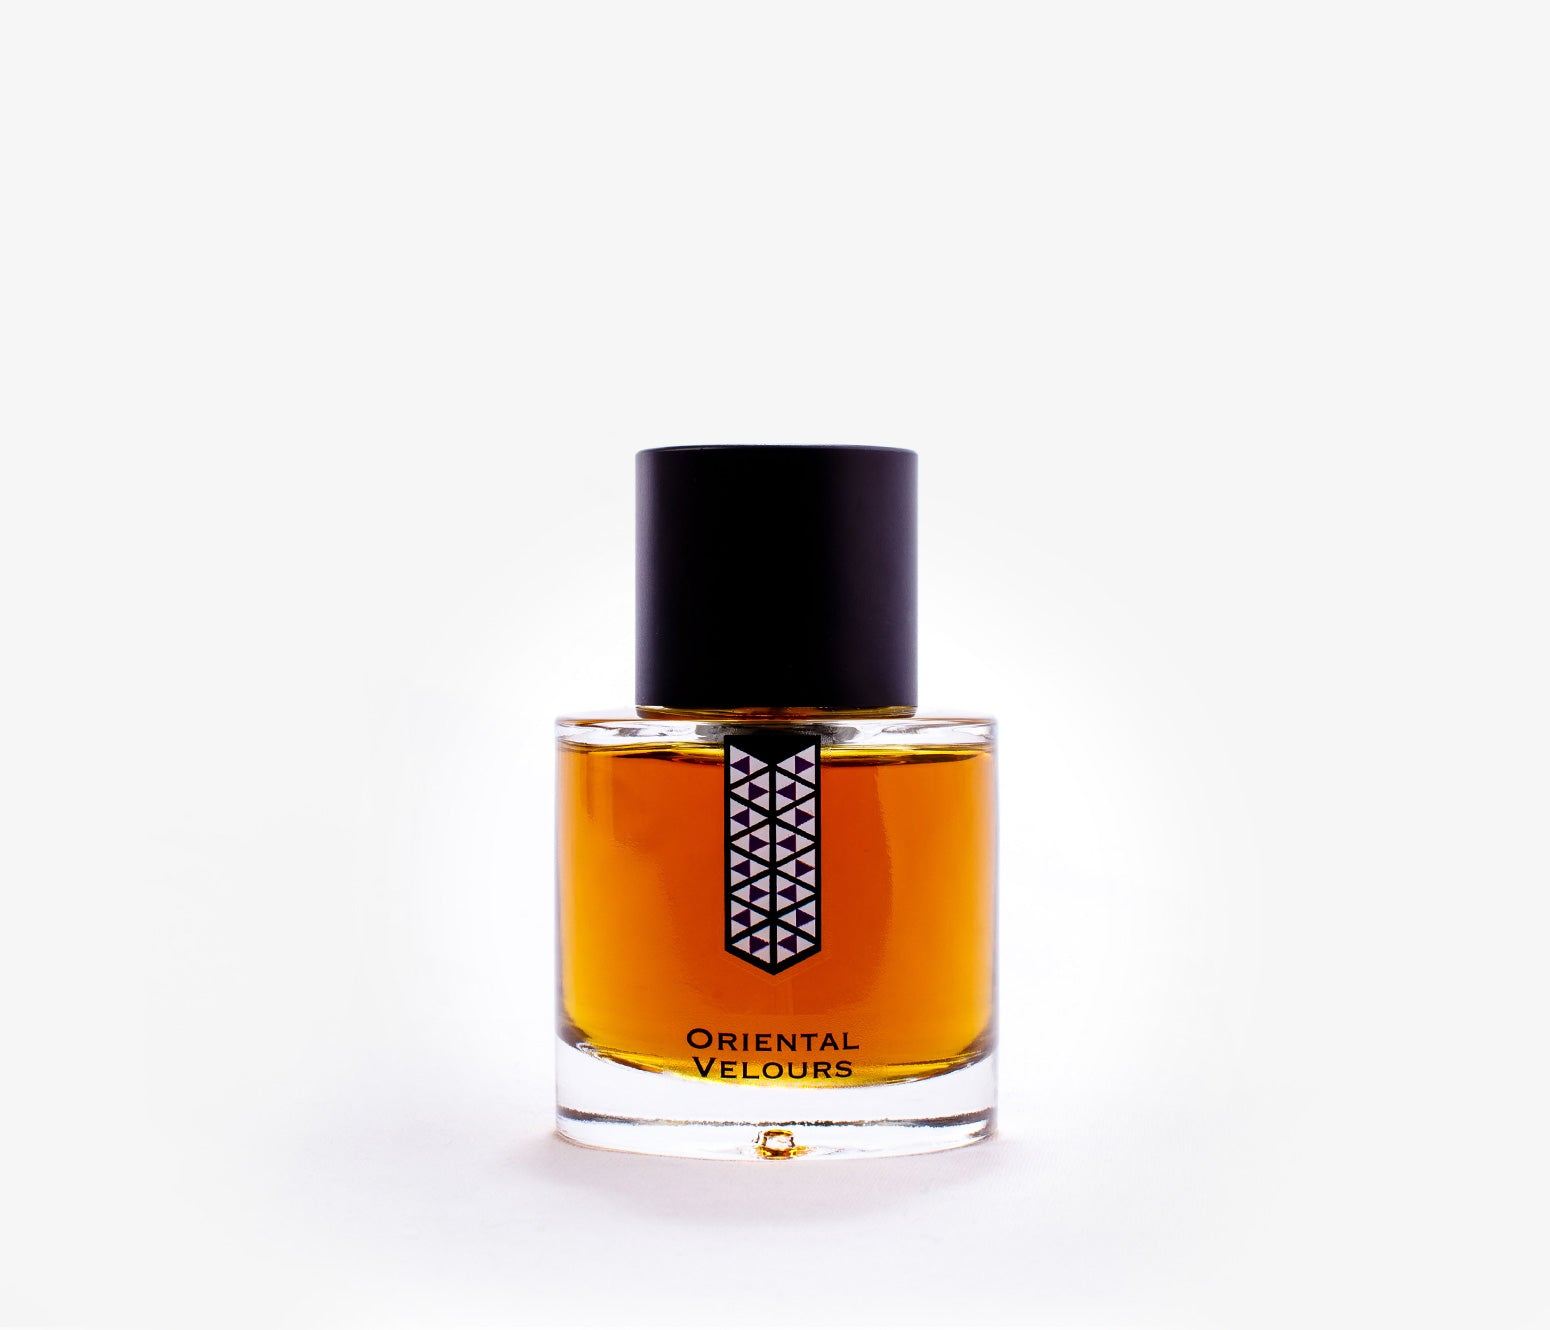 Les Indemodables - Oriental Velours - 50ml - ZPU001 - Product Image - Fragrance - Les Senteurs